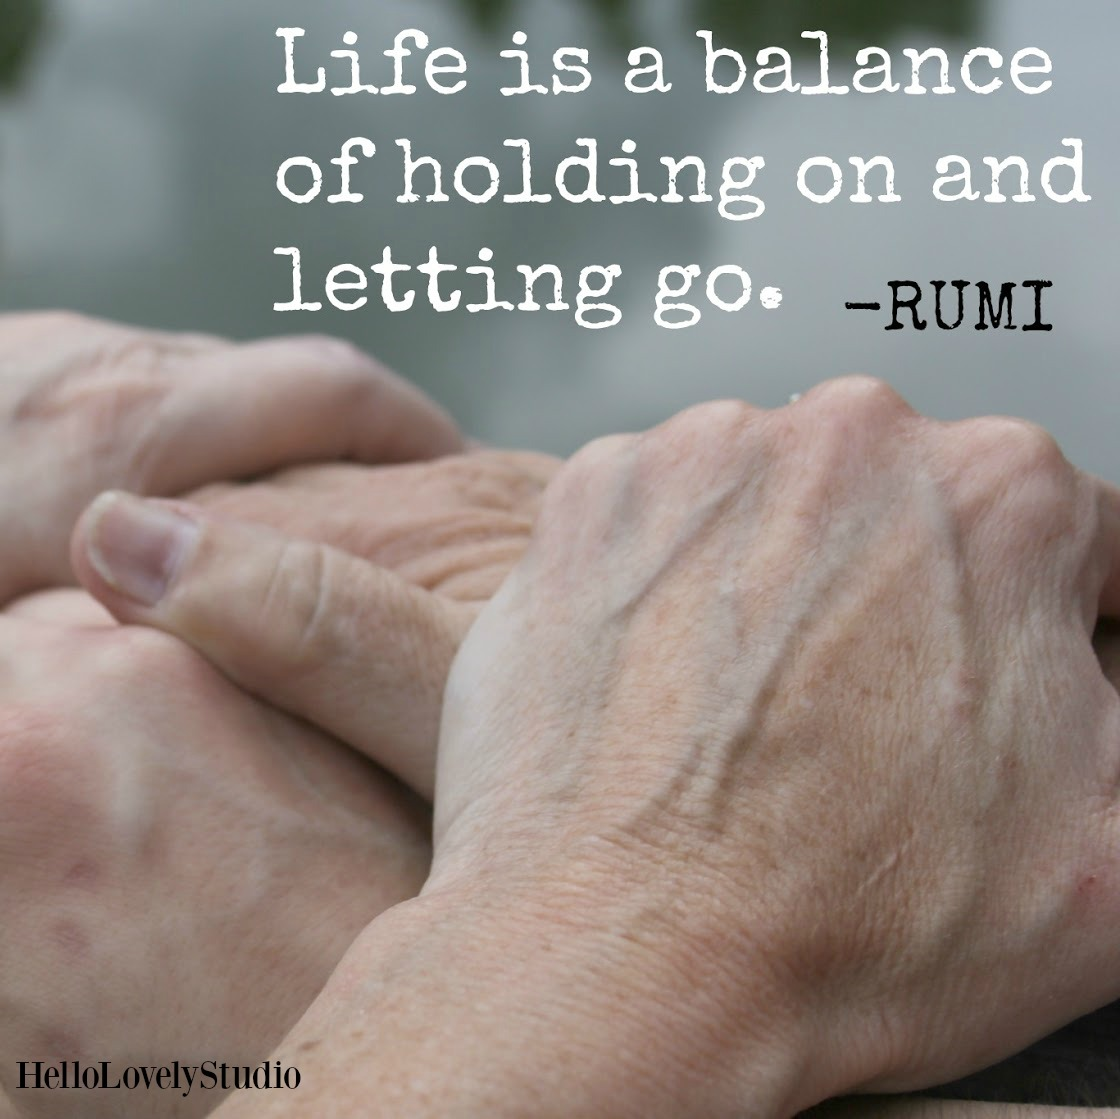 Rumi quote: Life is a balance of holding on and letting go. #hellolovelystudio #rumi #quote #wisdom #encouragement #spirituality